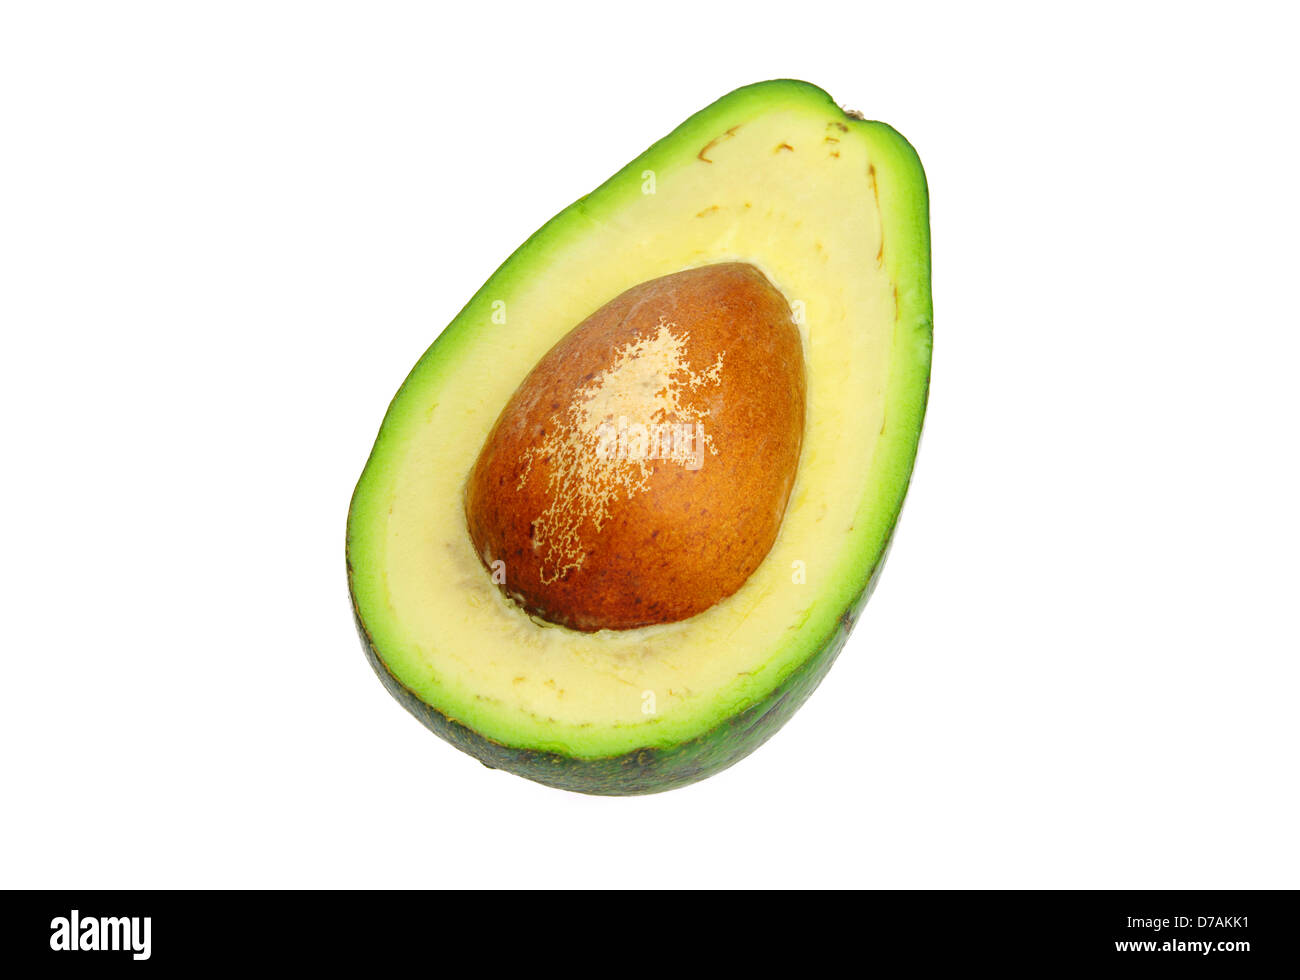 Avocado 04 - Stock Image